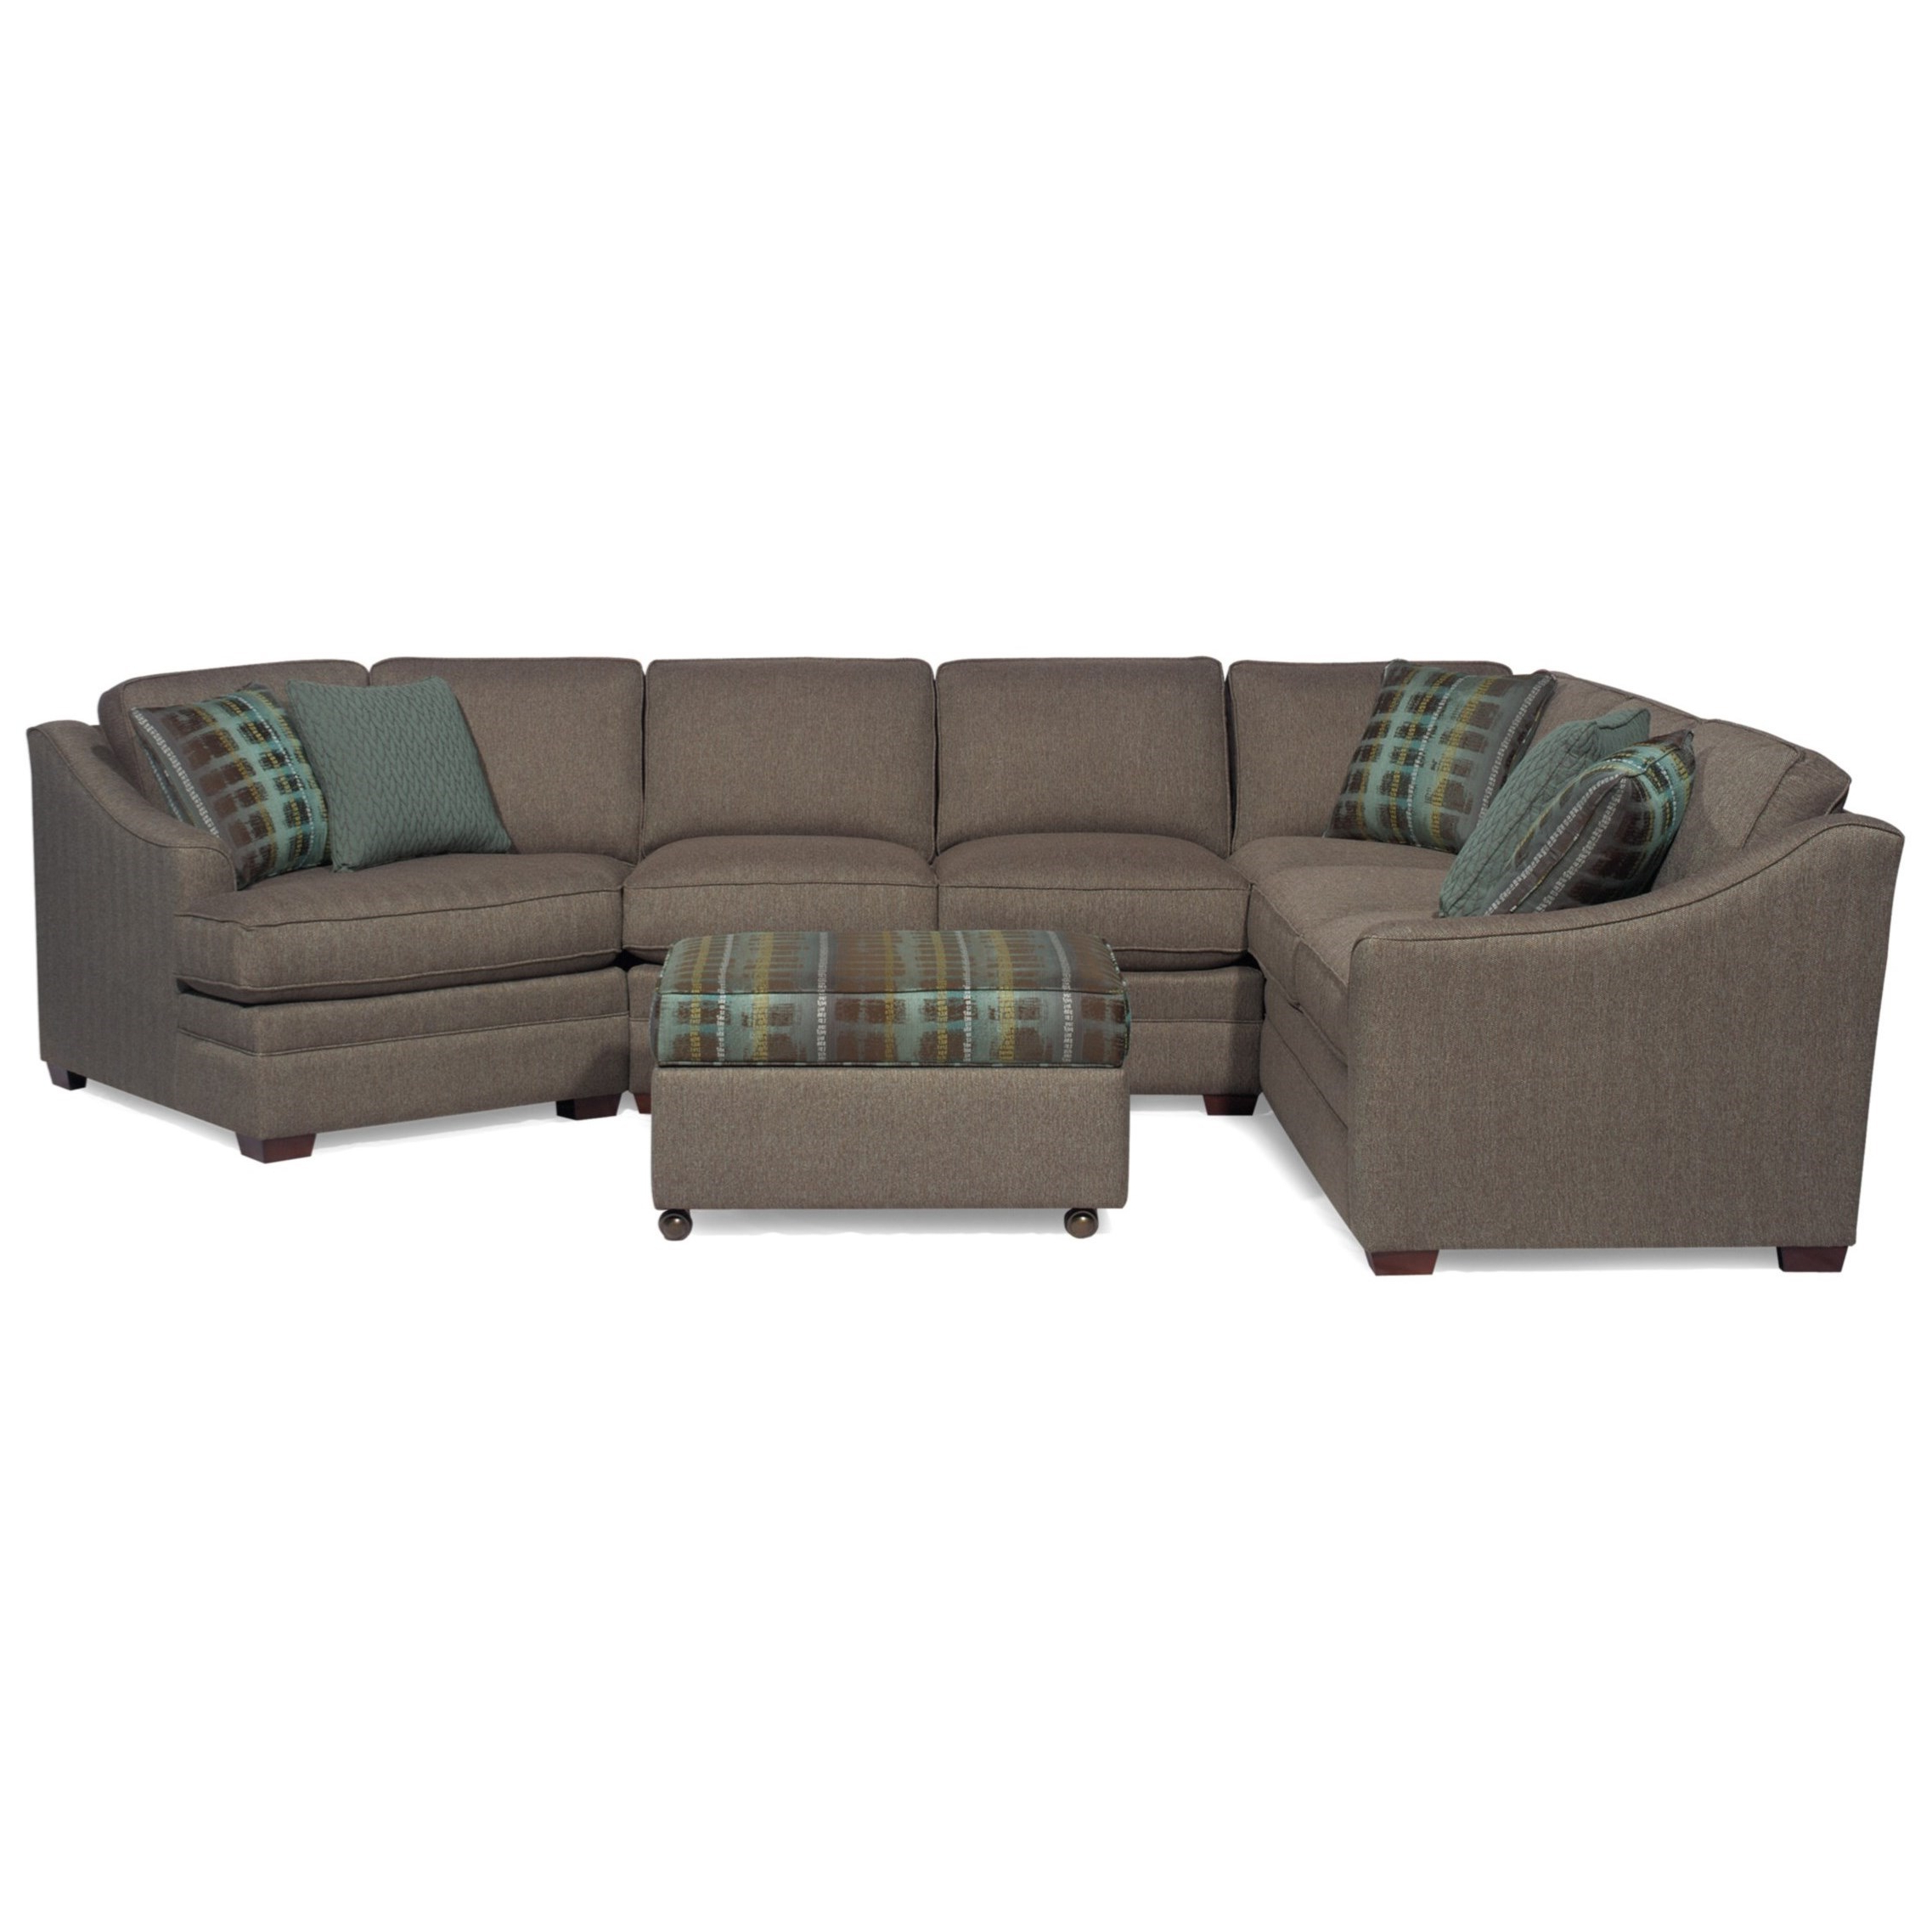 Craftmaster F9 Design Options <b>customizable</b> 3 Piece Sectional With Regard To Preferred Adeline 3 Piece Sectionals (View 16 of 20)